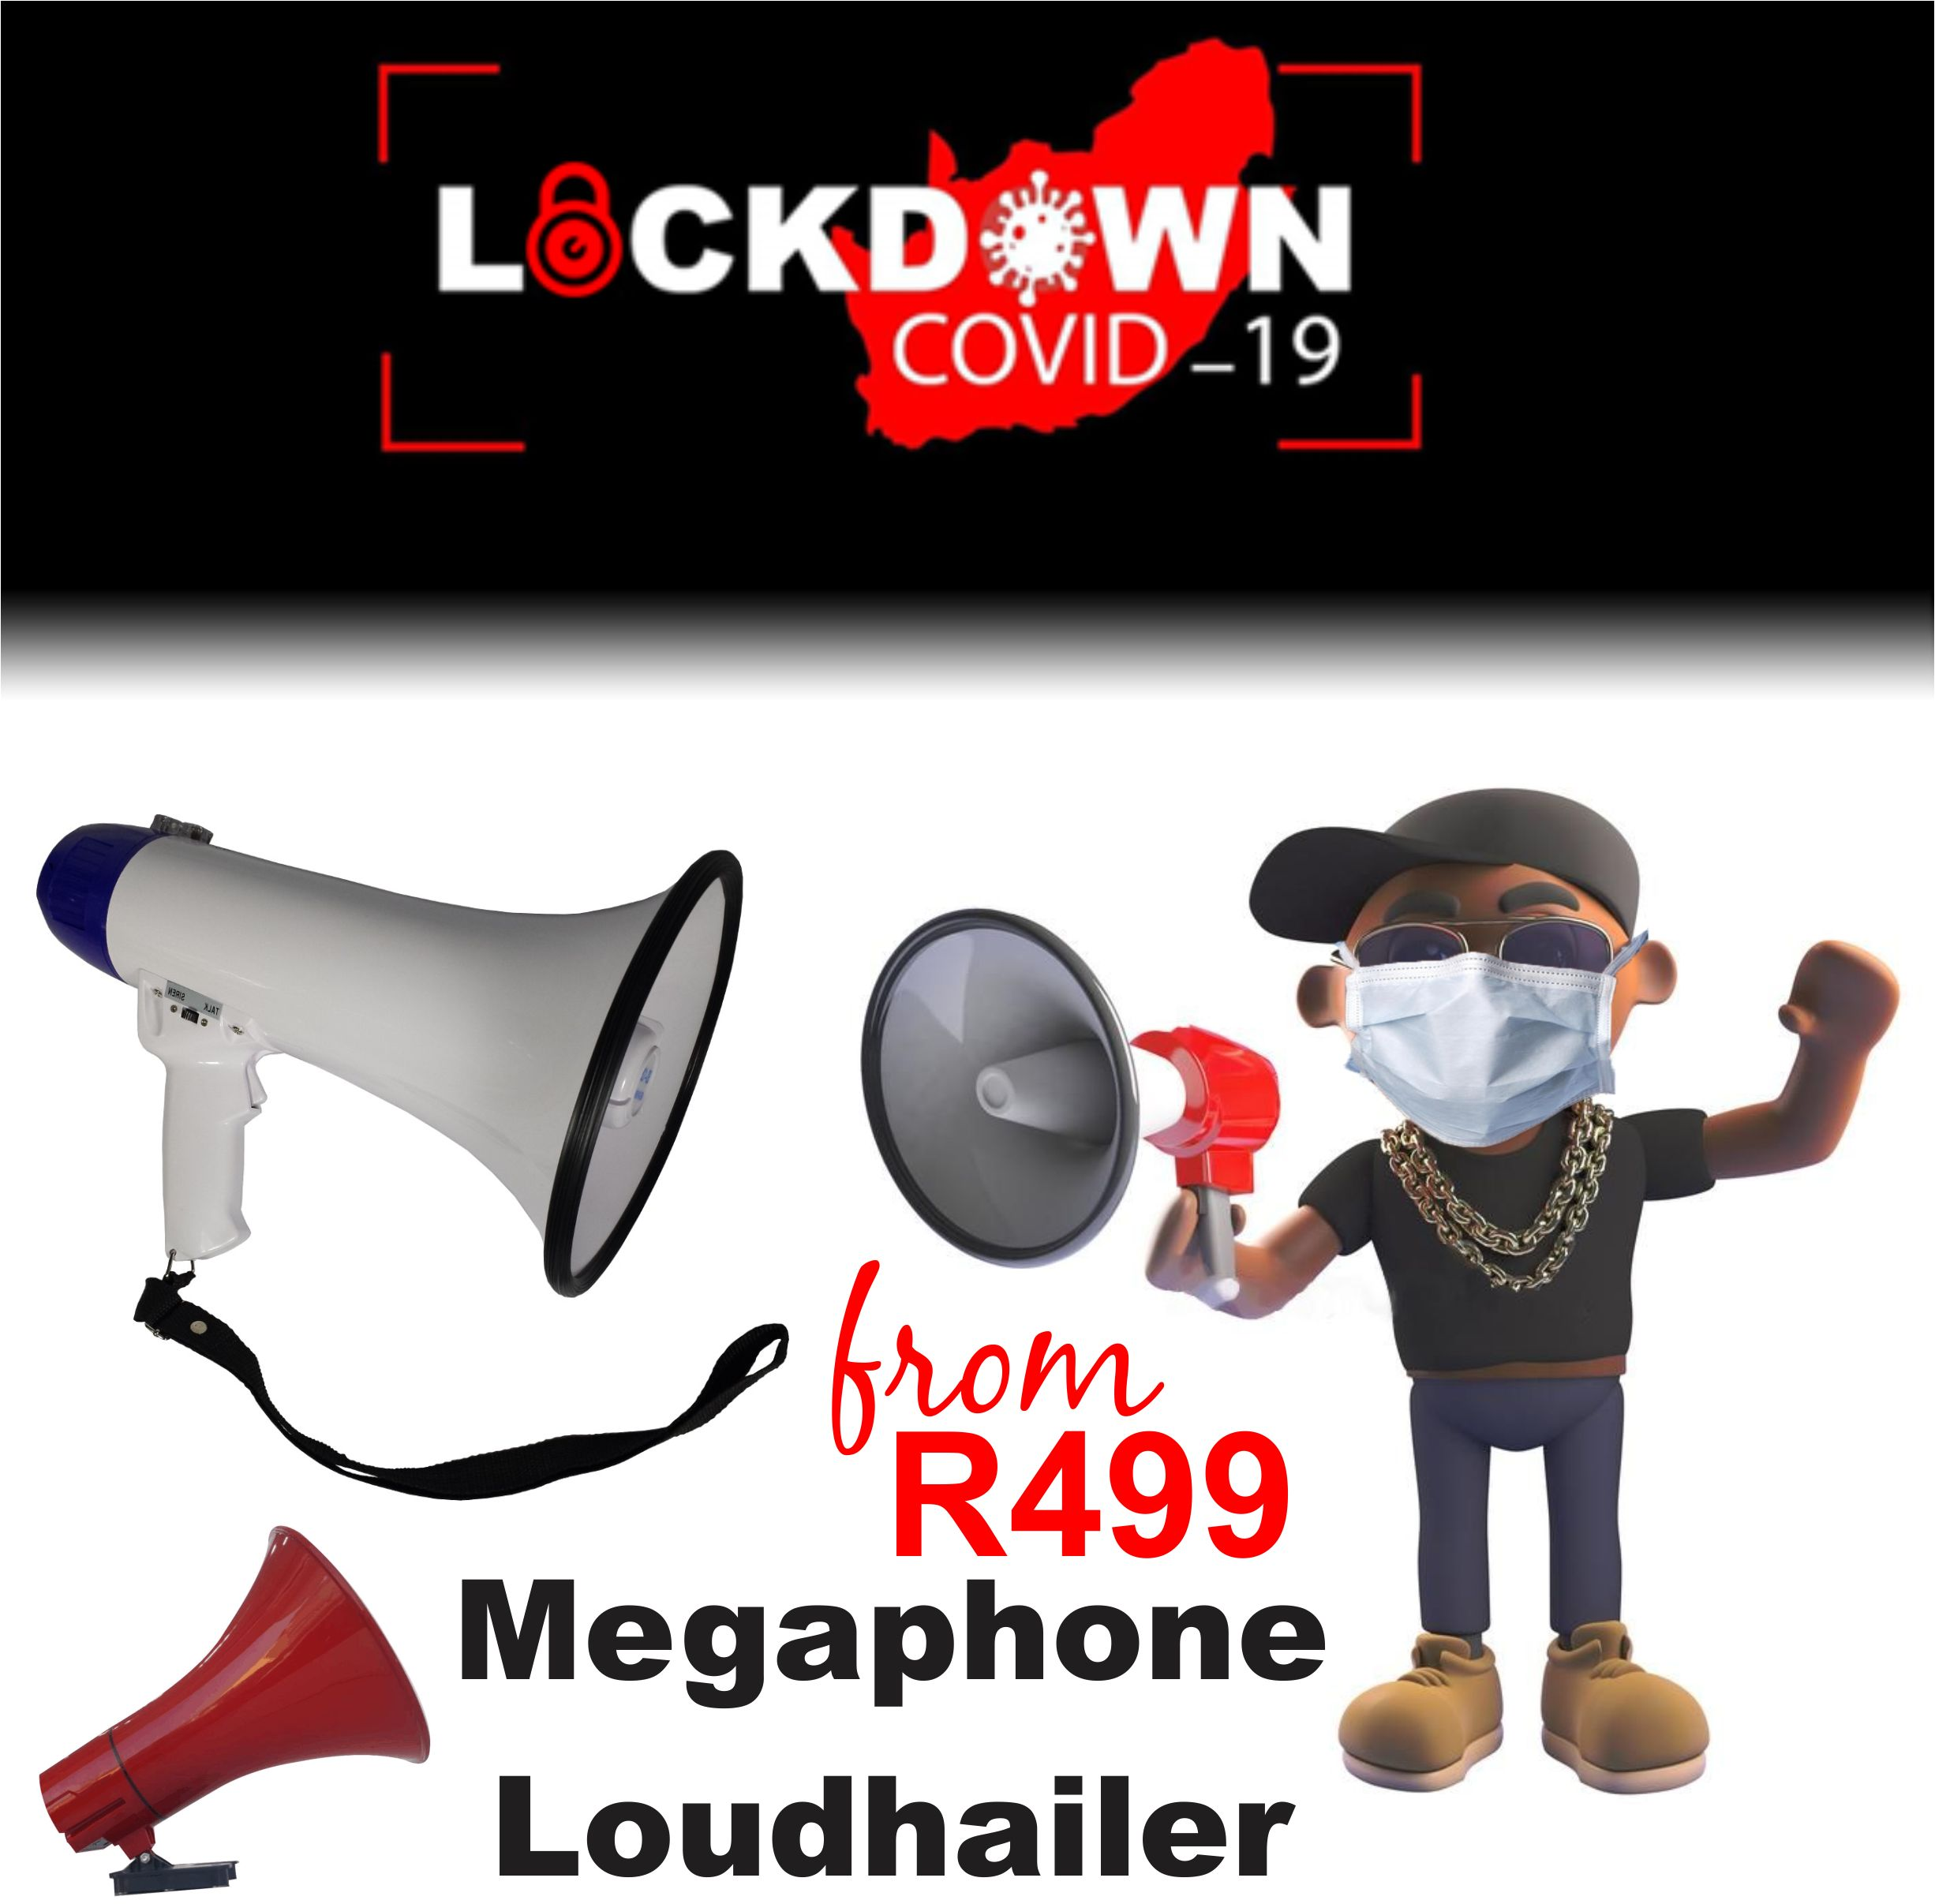 PA OUTDOOR HORNS PA MEGAPHONES LOUDHAILER DURBAN PUBLIC ADDRESS MEGAPHONE LOUDHAILERS PA PAGING  BROADCASTING SYSTEMS DURBAN 12v PA VECHILE HORNS